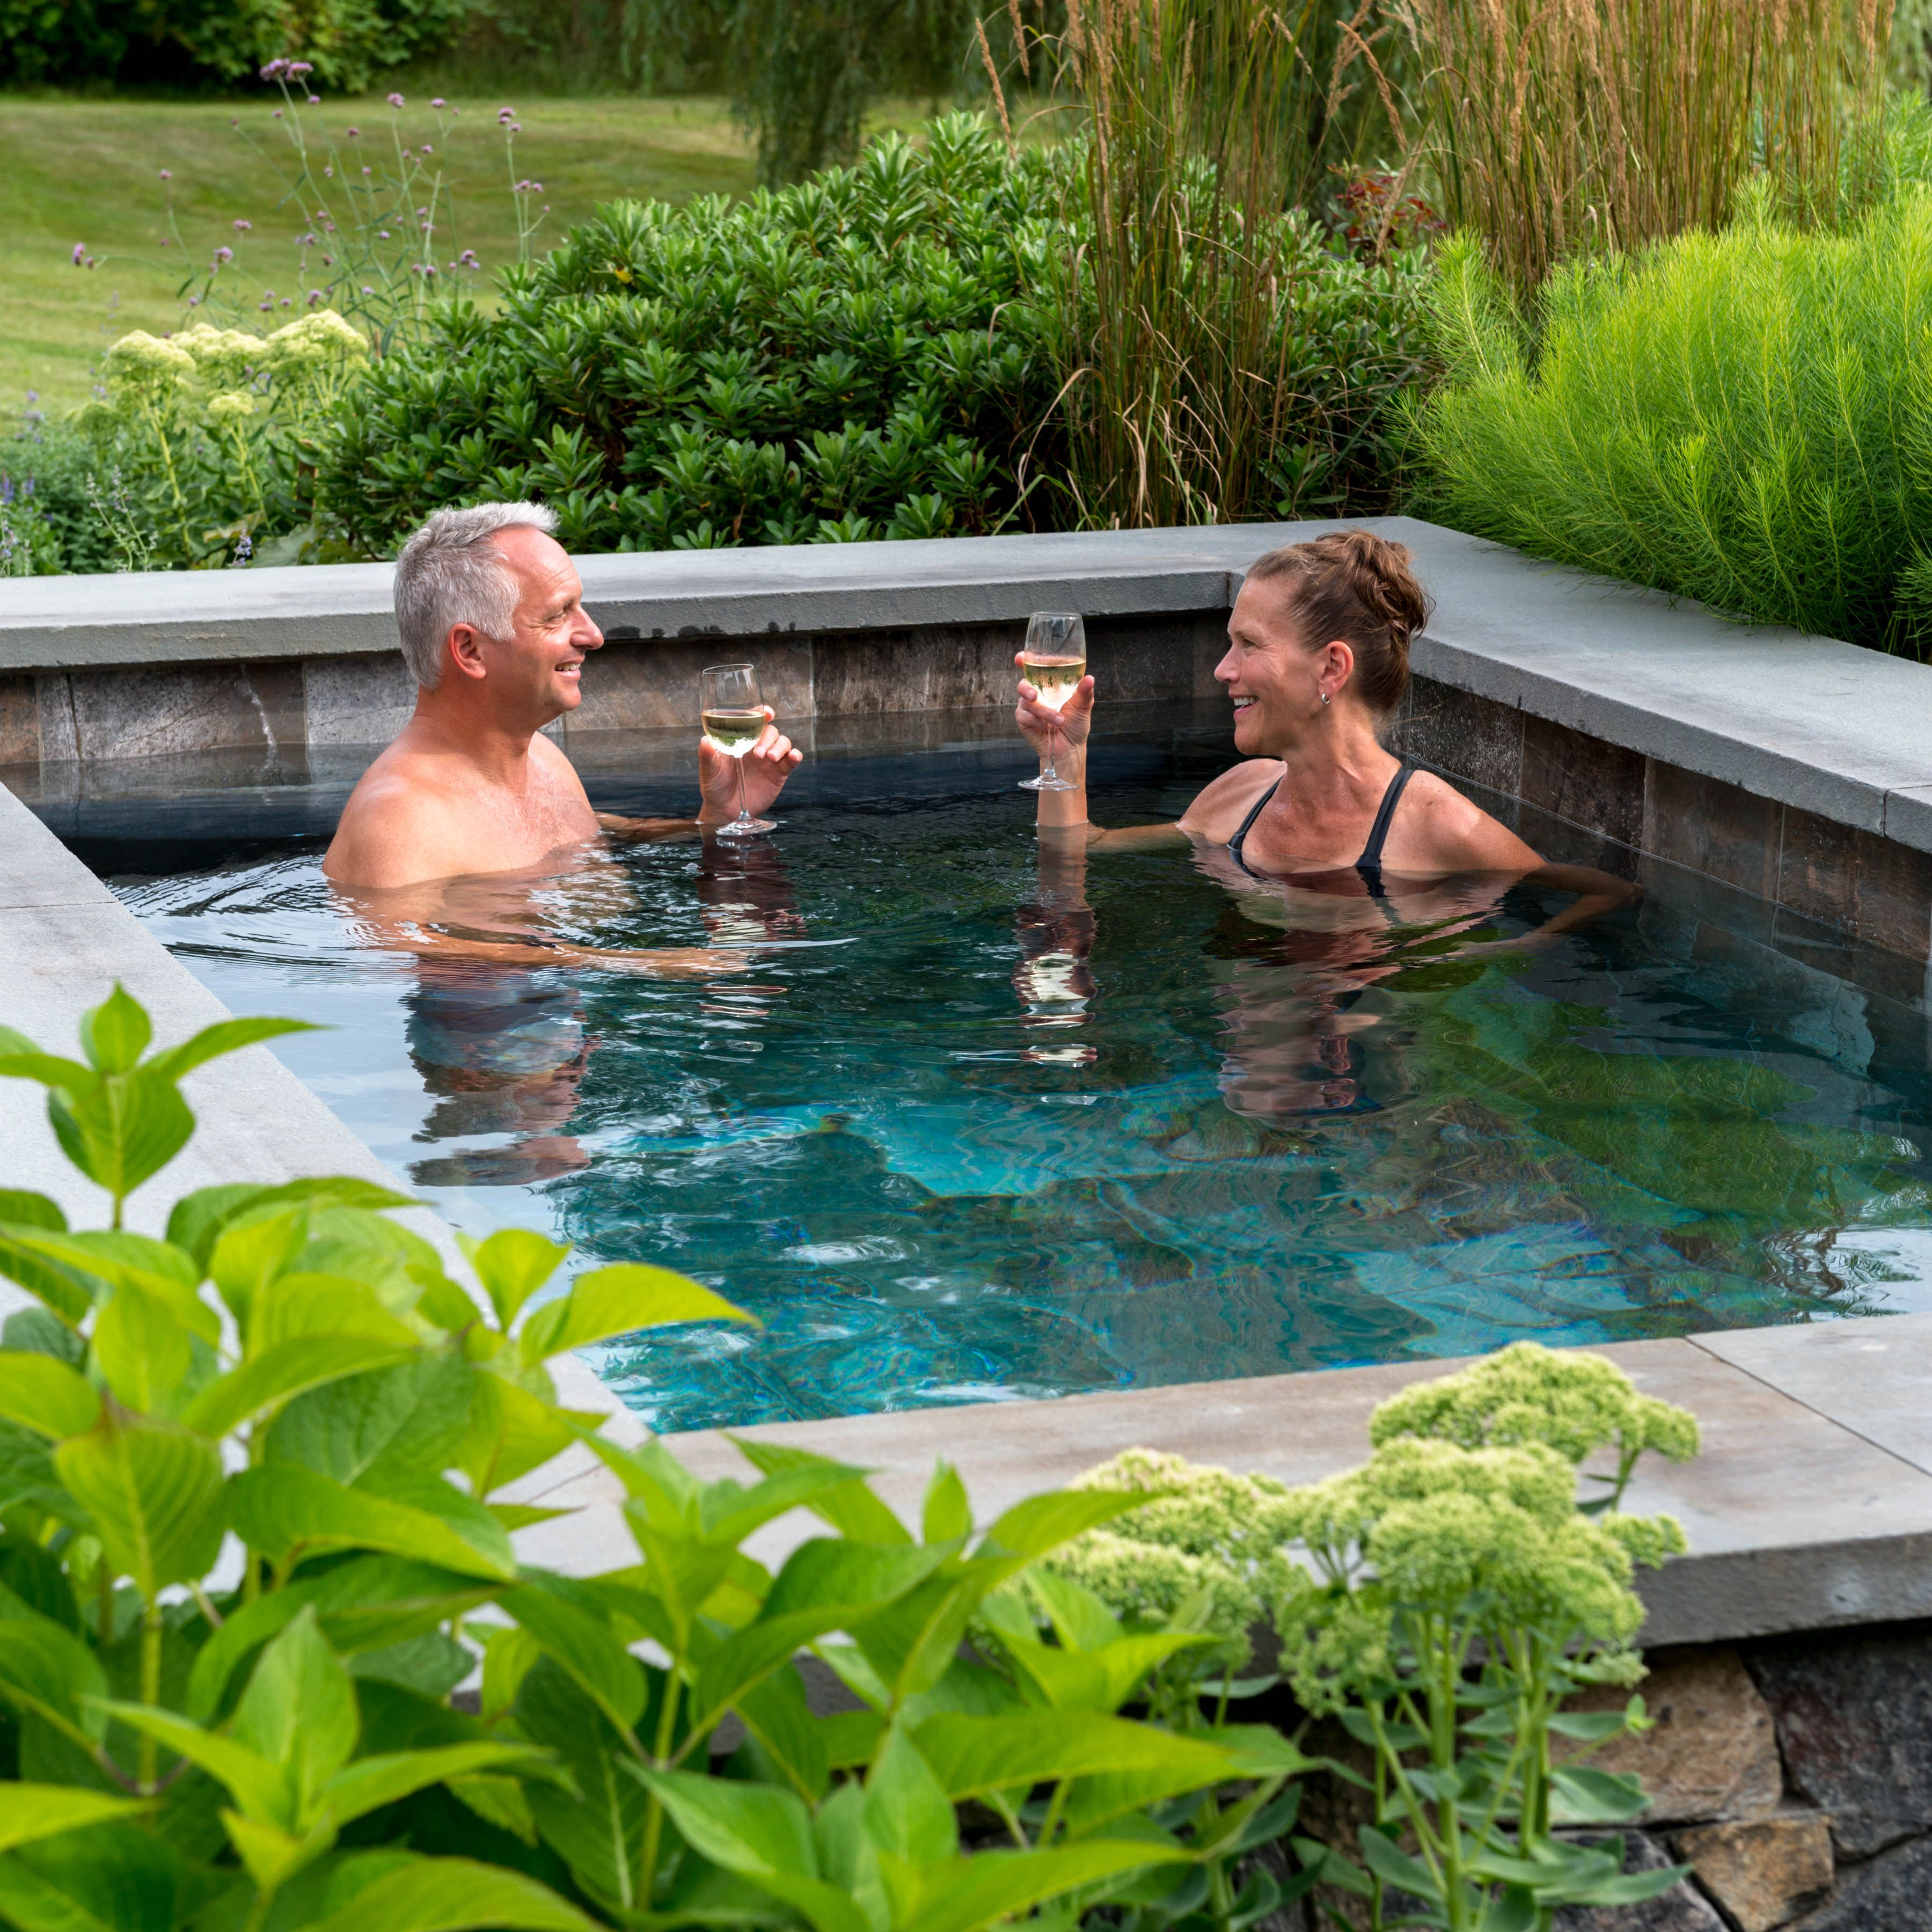 Clink🍷Enjoy a relaxing evening in a Soake pool in the comfort of your own backyard Photo by John W. Hession